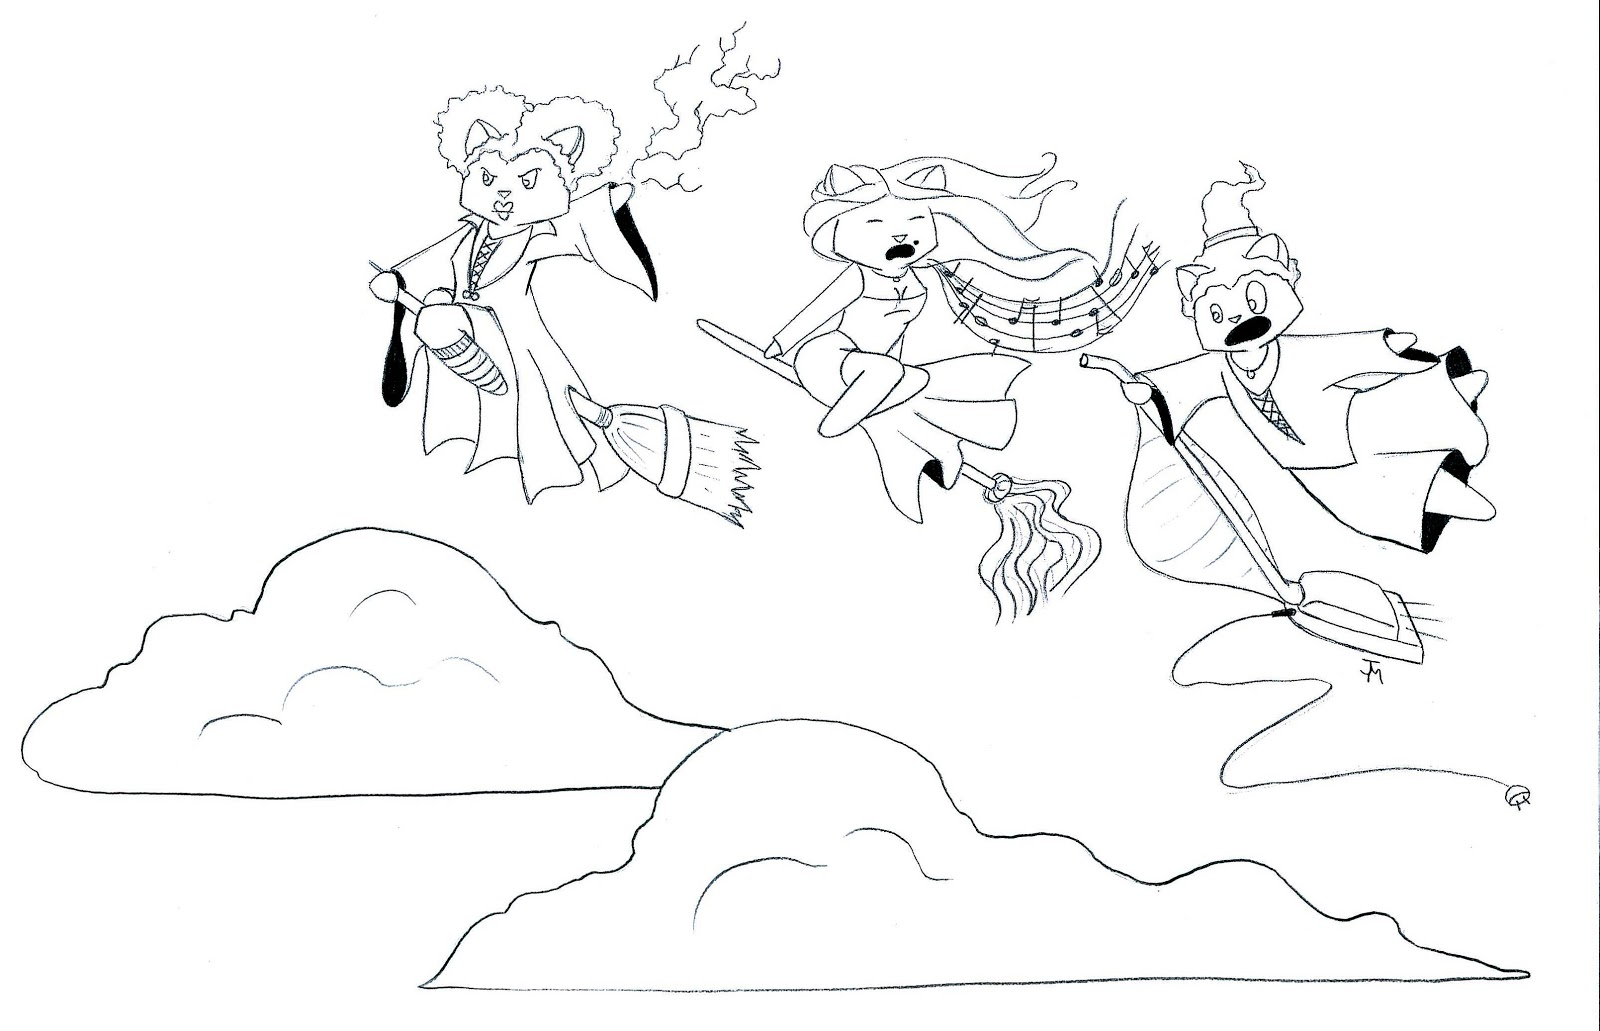 hocus pocus movie coloring pages coloring pages posted by jeff mason at 8 57 am no comments